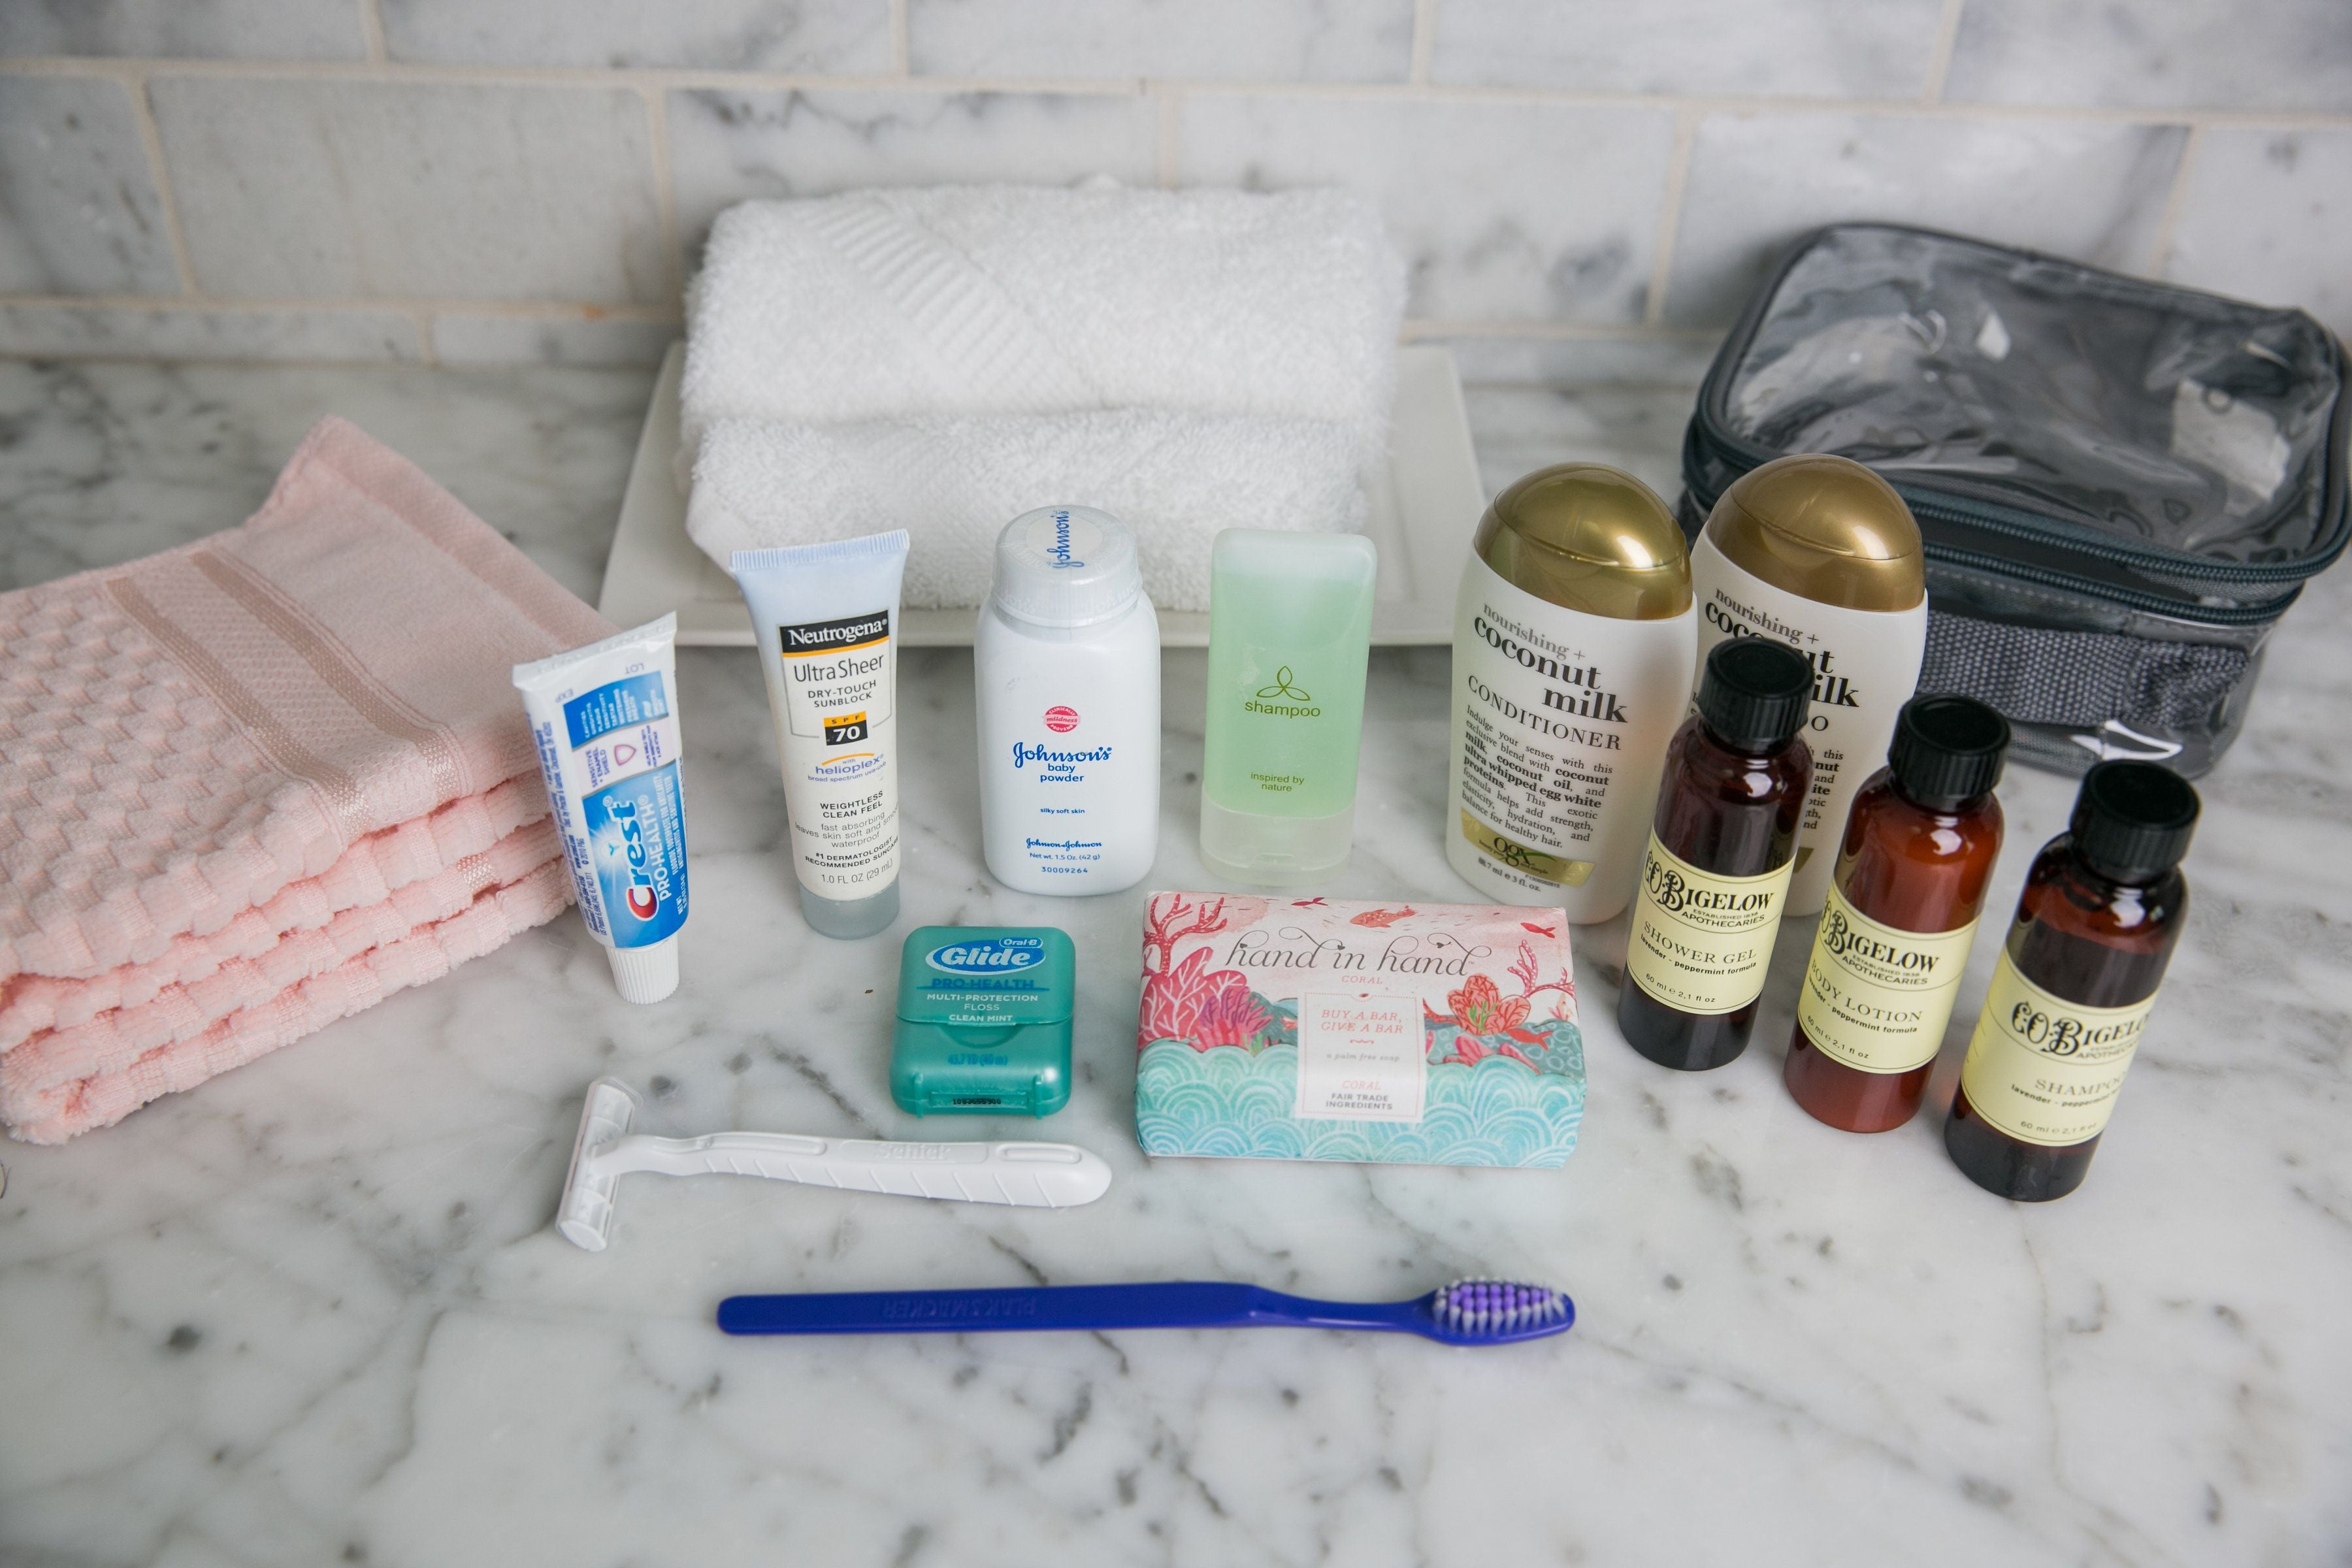 Travel size toiletries for summer trip